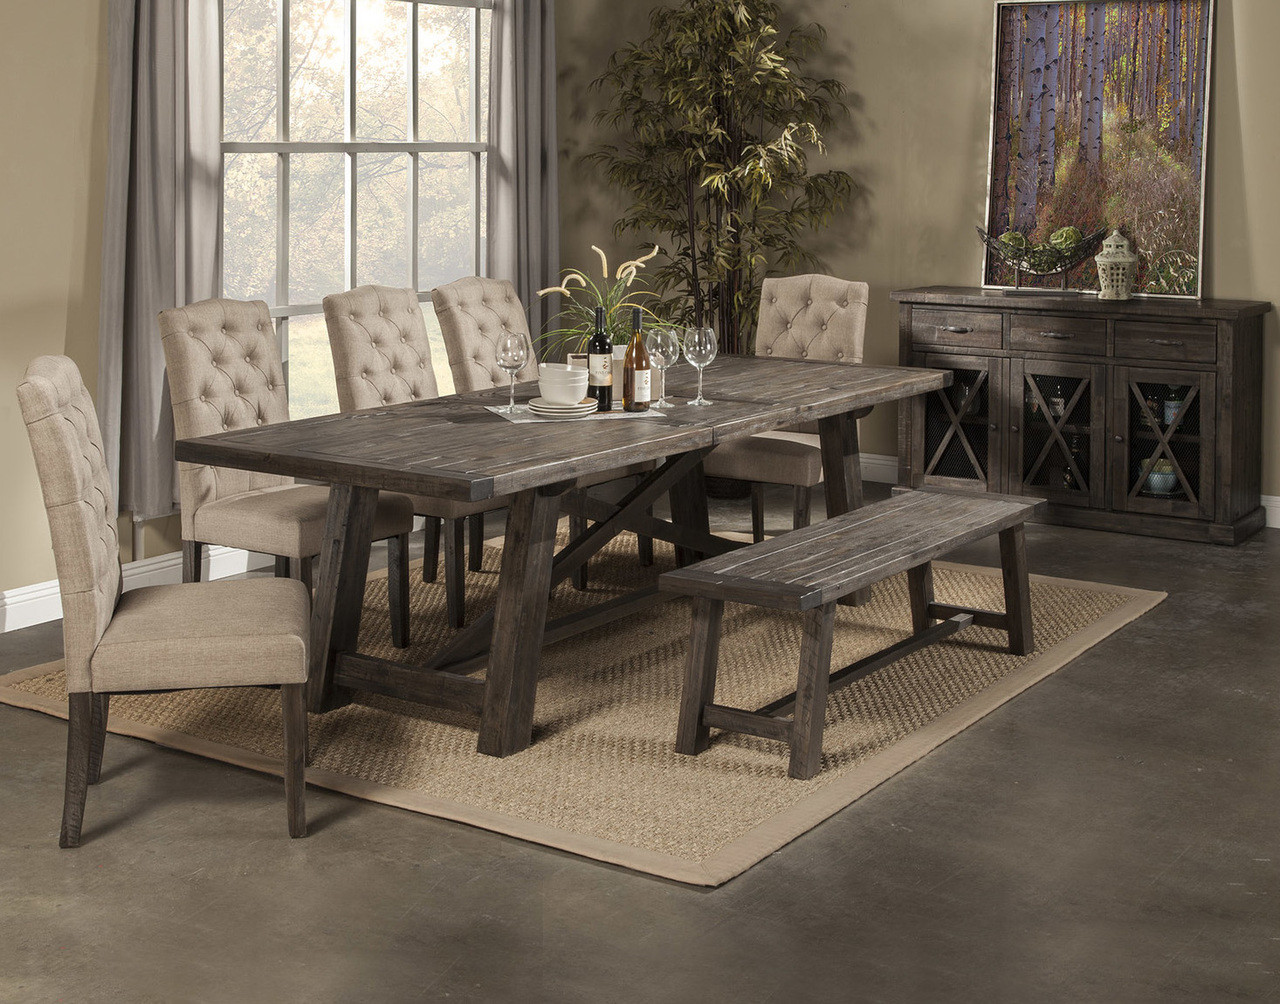 Newberry Dining Table with 4 Chairs u0026 Bench | Salvaged Grey Dining Table ... & Newberry Dining Table with 4 Chairs u0026 Bench